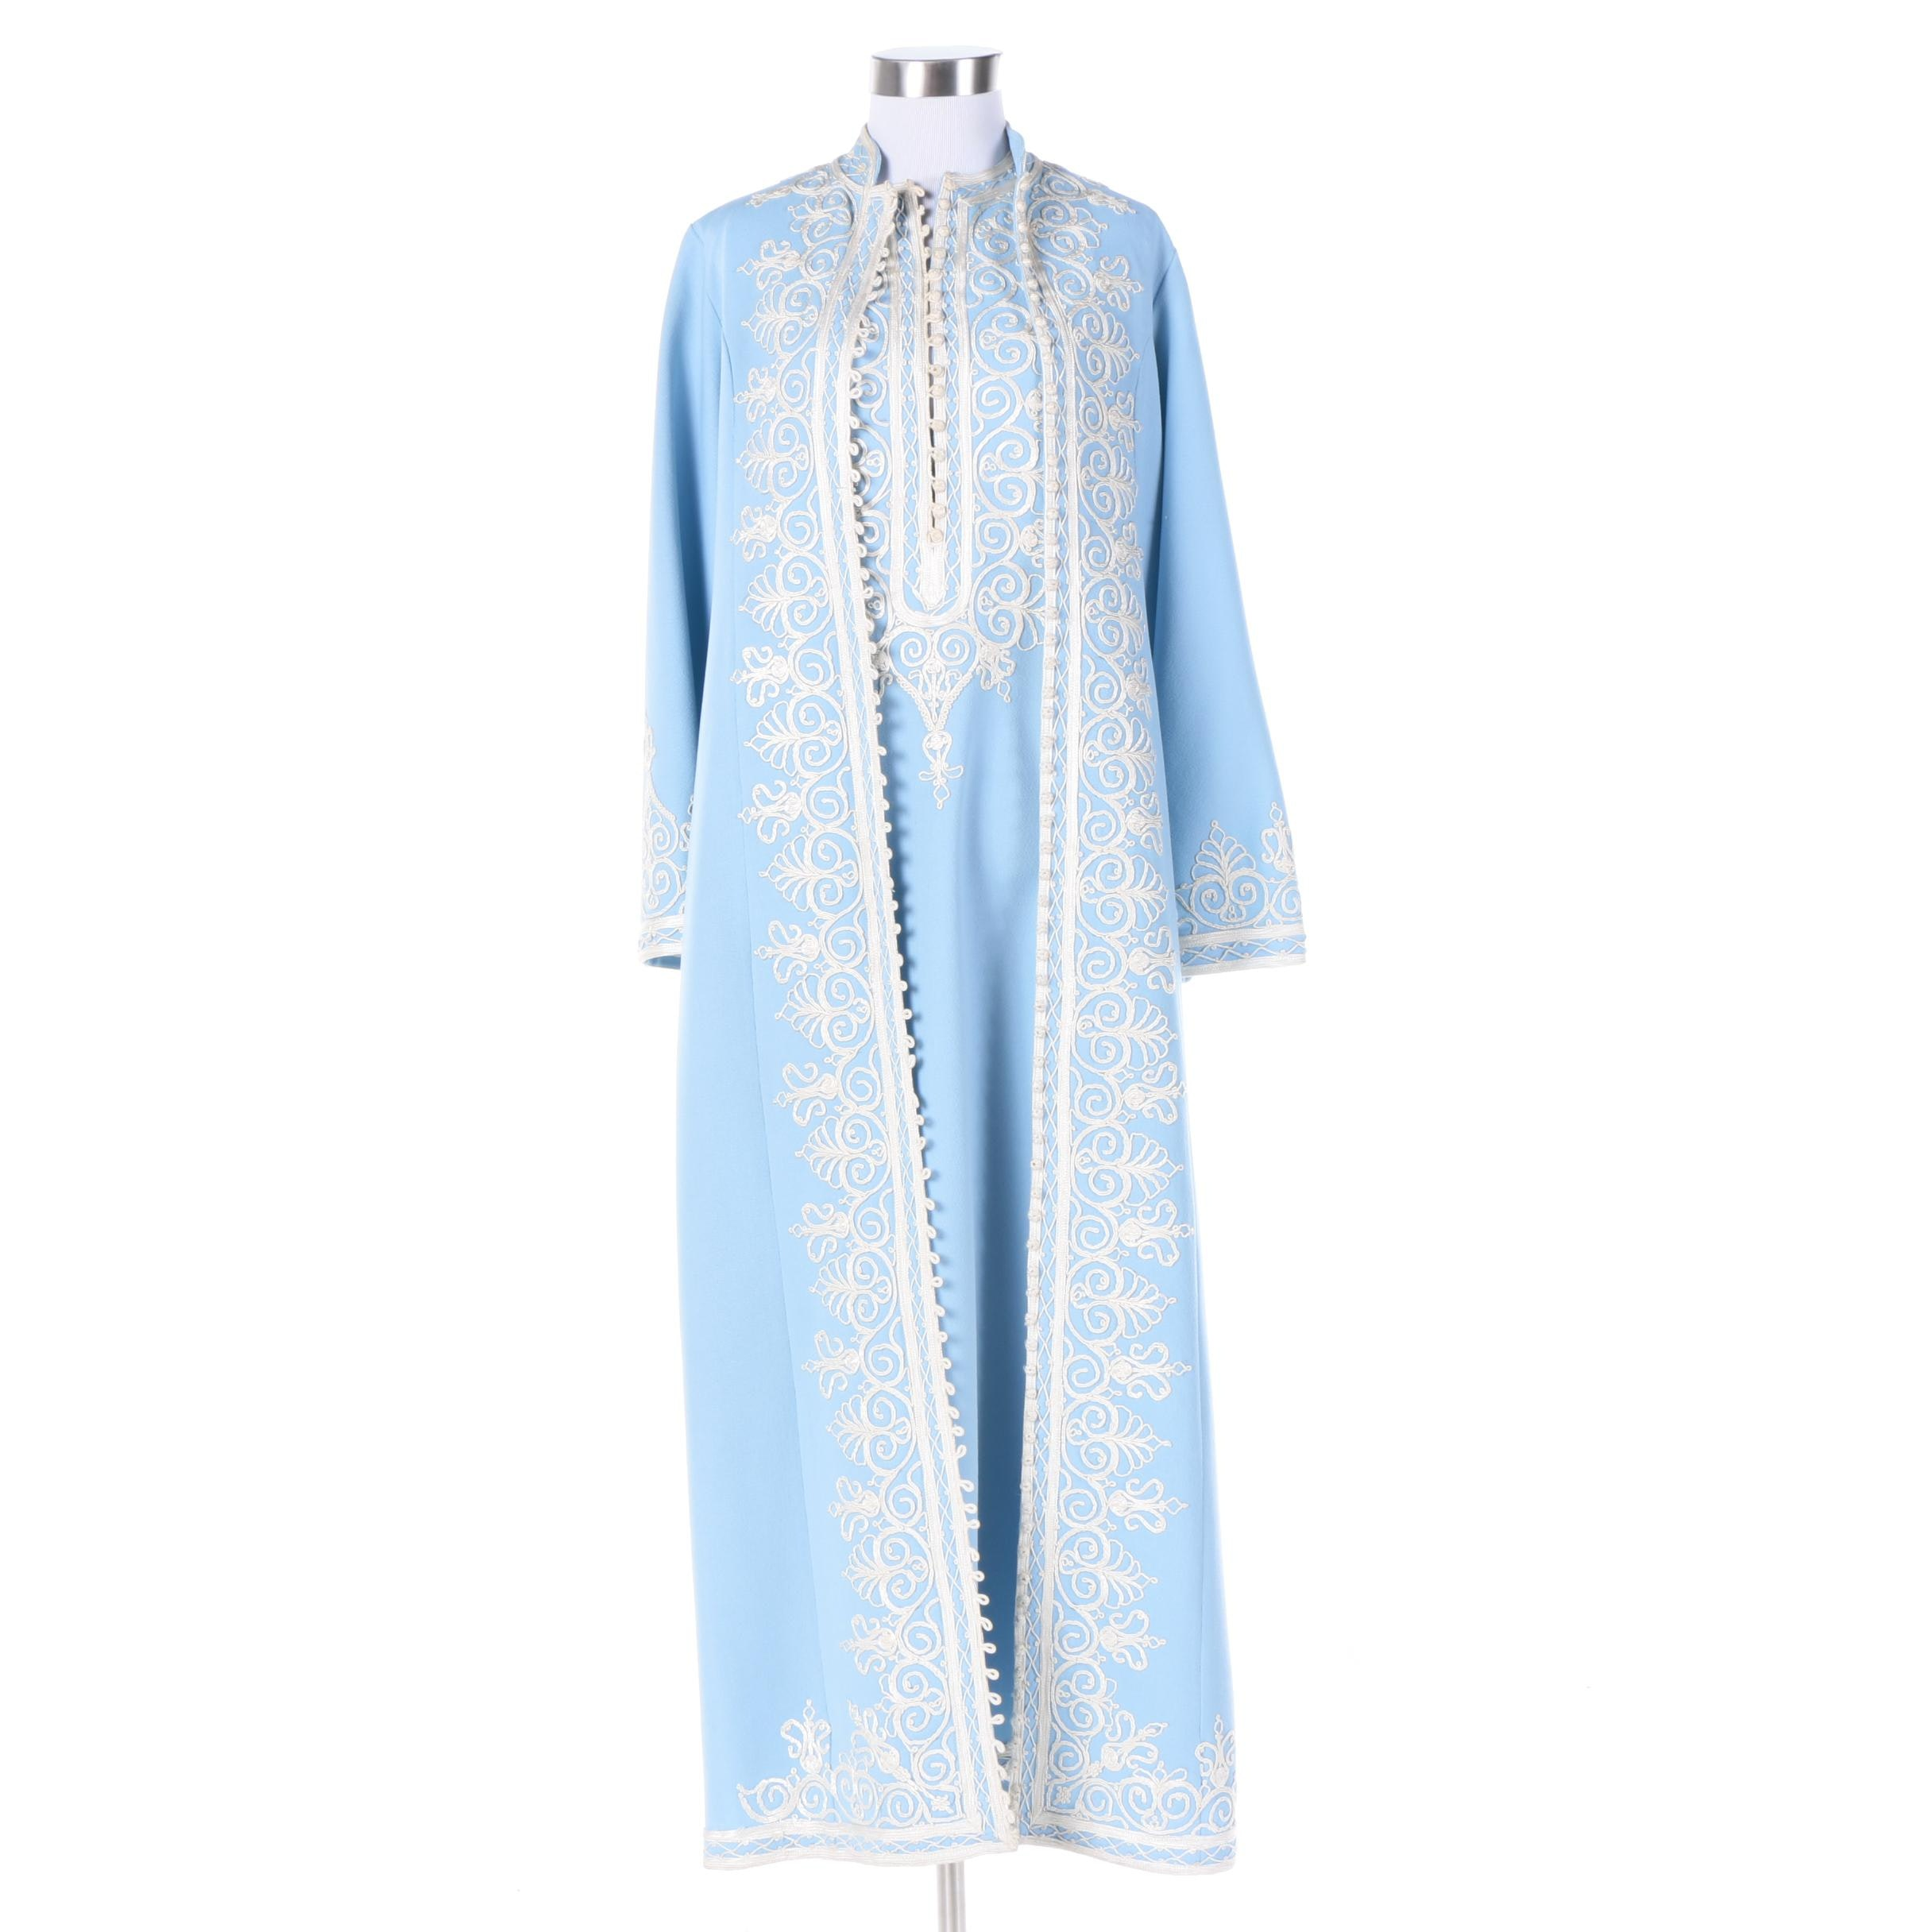 Women's Embroidered Tunic Dress and Matching Dress Coat